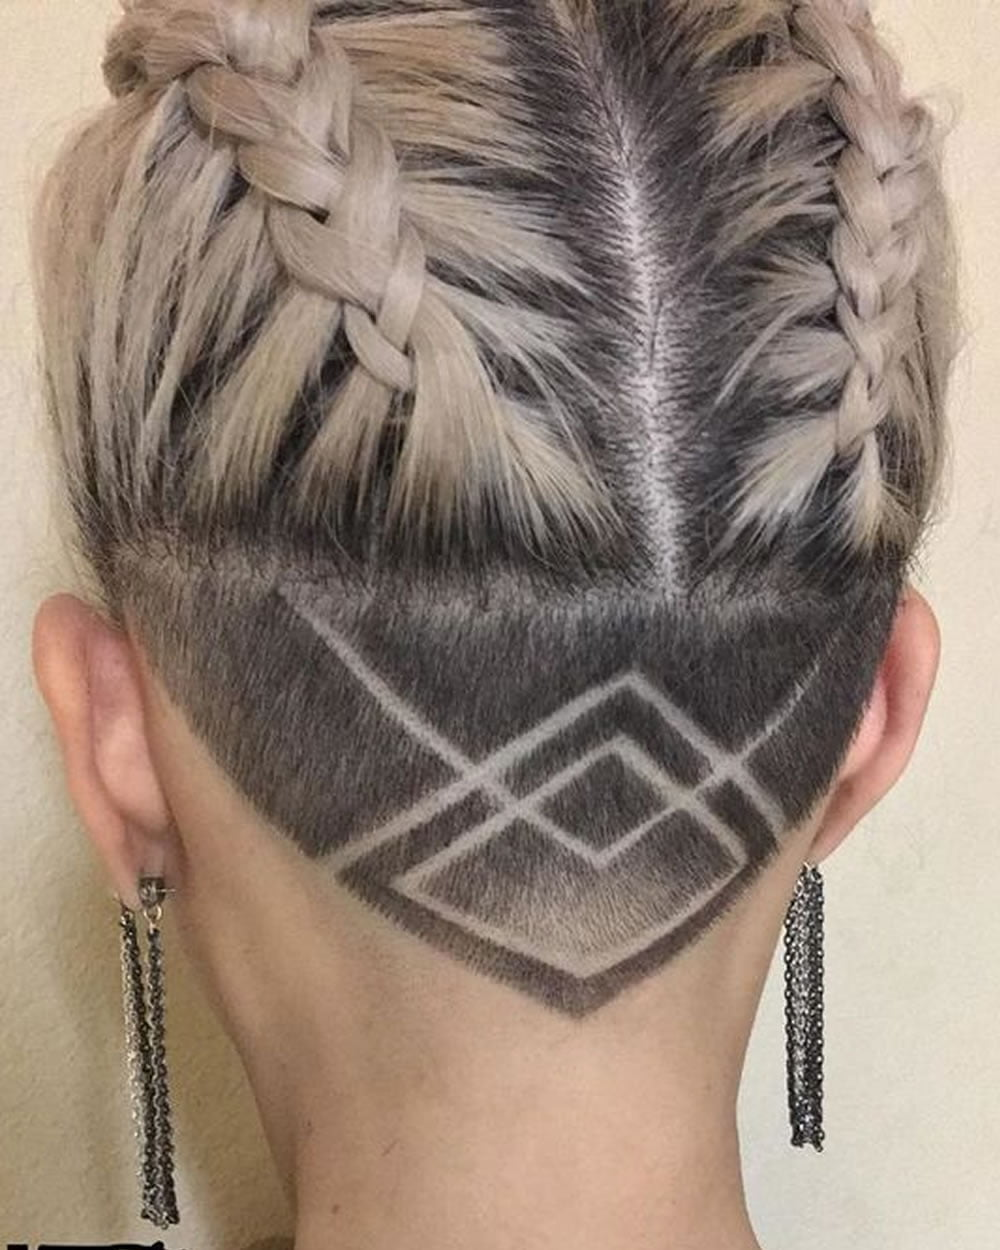 pics 45 Undercut Hairstyles with Hair Tattoos for Women With Short or Long Hair